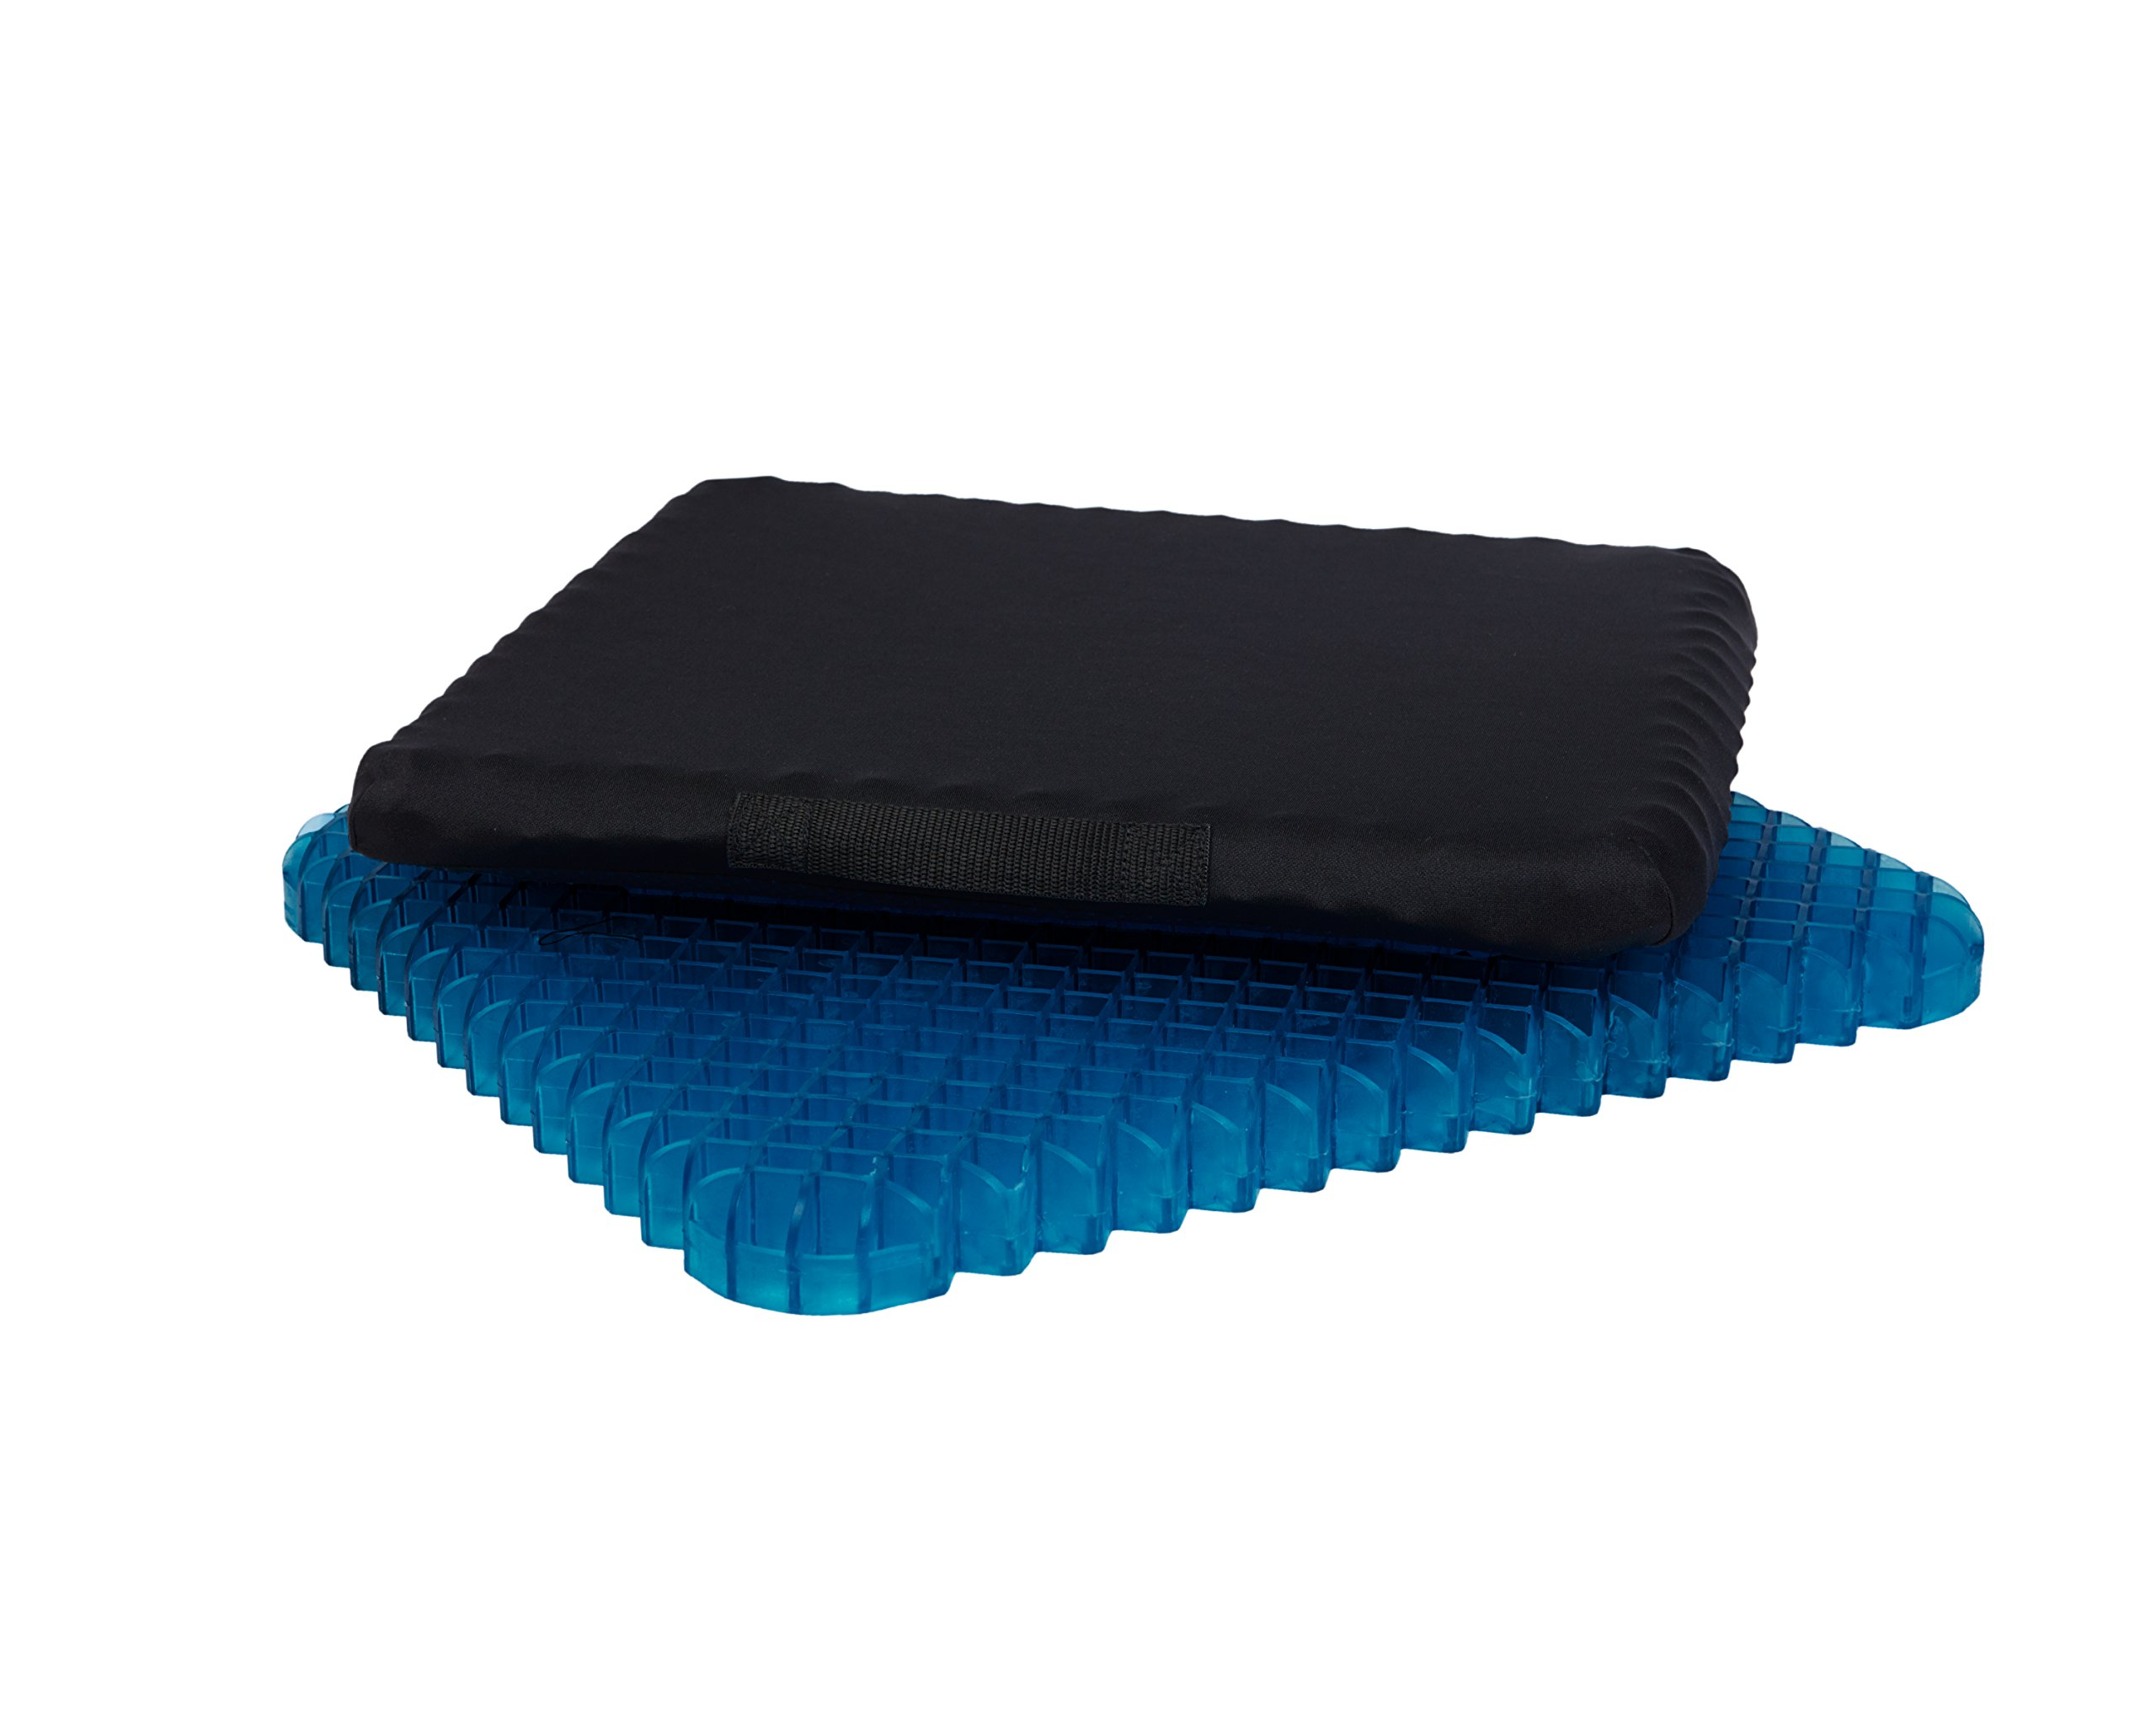 Miracle Cushion OPTIMA Orthopedic Non-liquid Gel Seat Cushion - Gel Pad, Home, Office, Auto, Travel Cushion, for Bottom, Lower Back, Coccyx, Pain Relief, USA Made